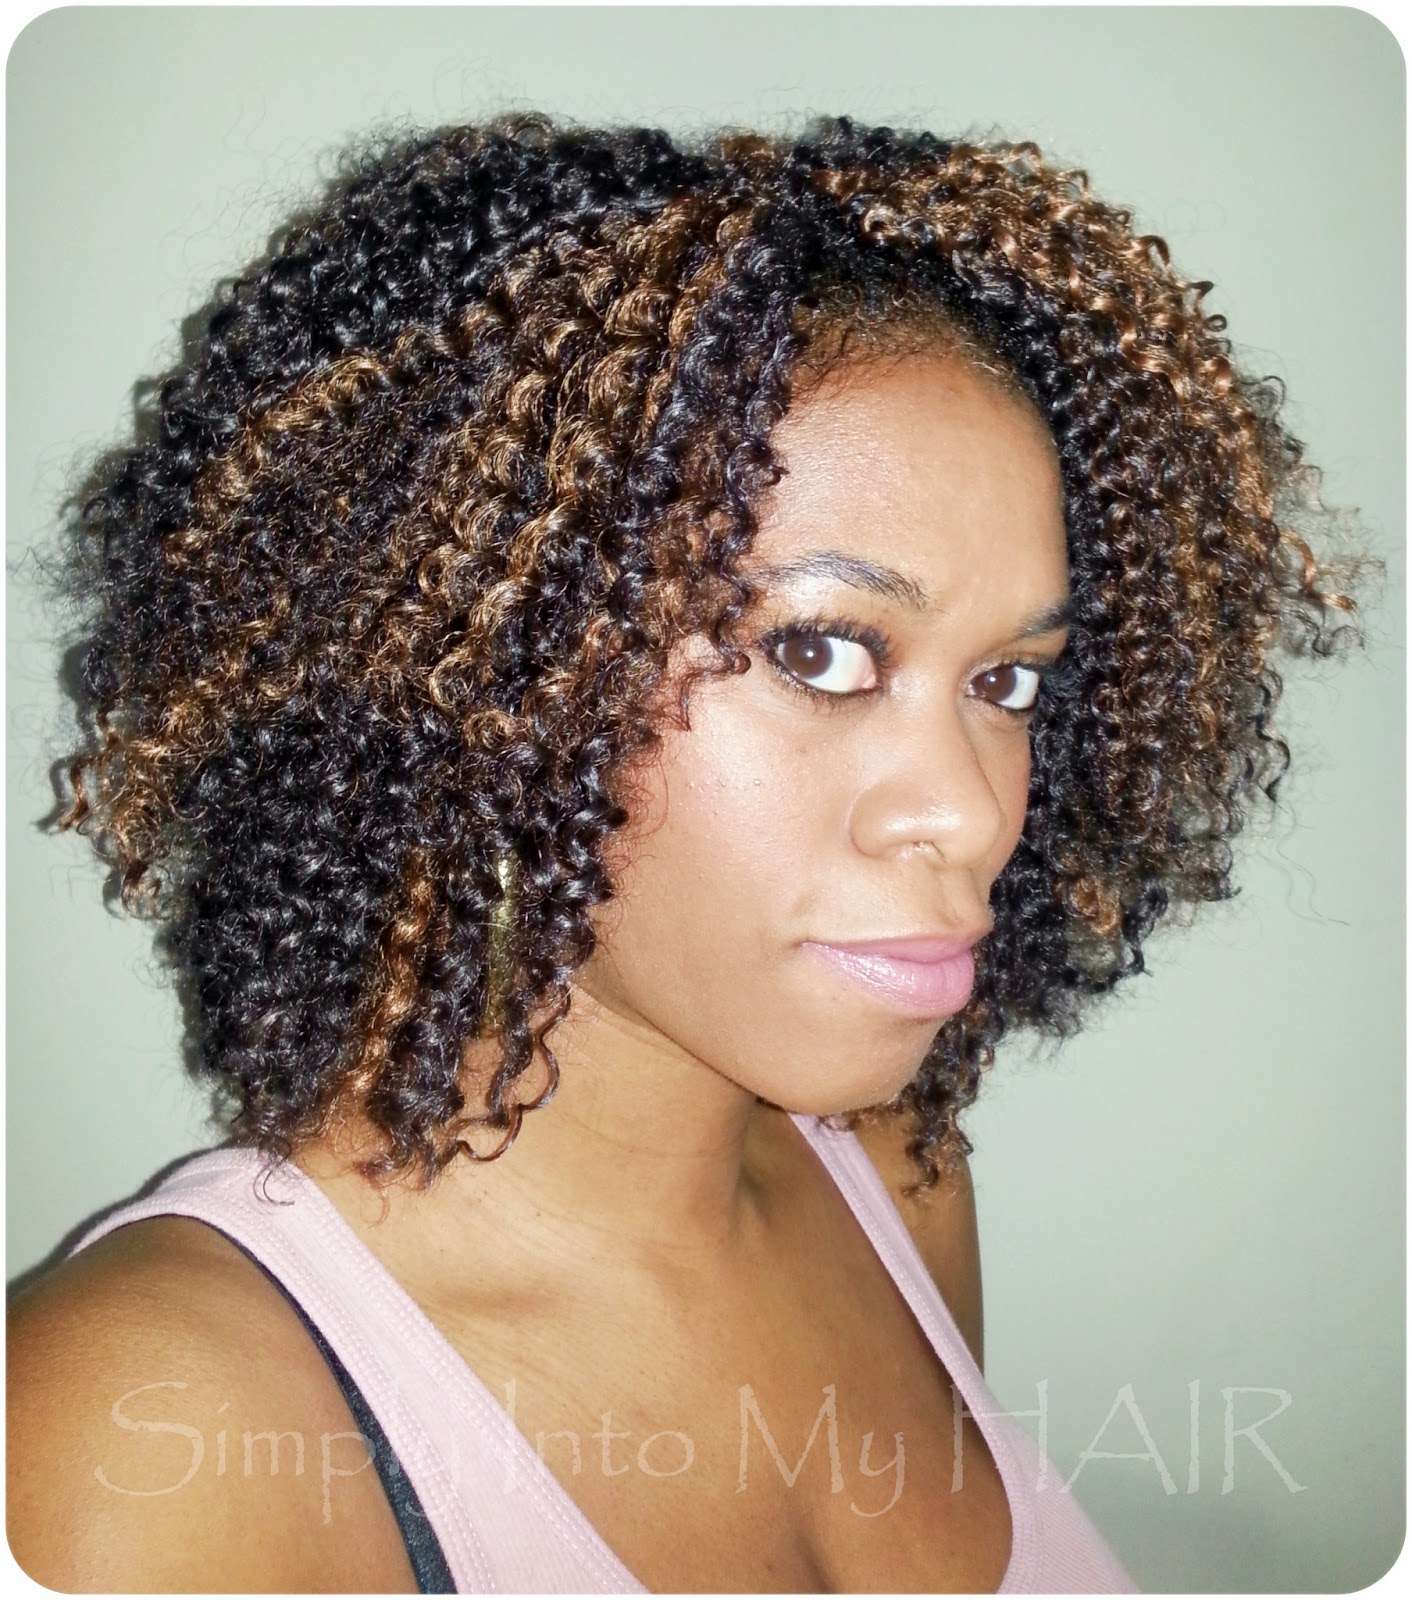 Crochet Hair Dallas : Crochet Braids #7 Simply Into My HAIR